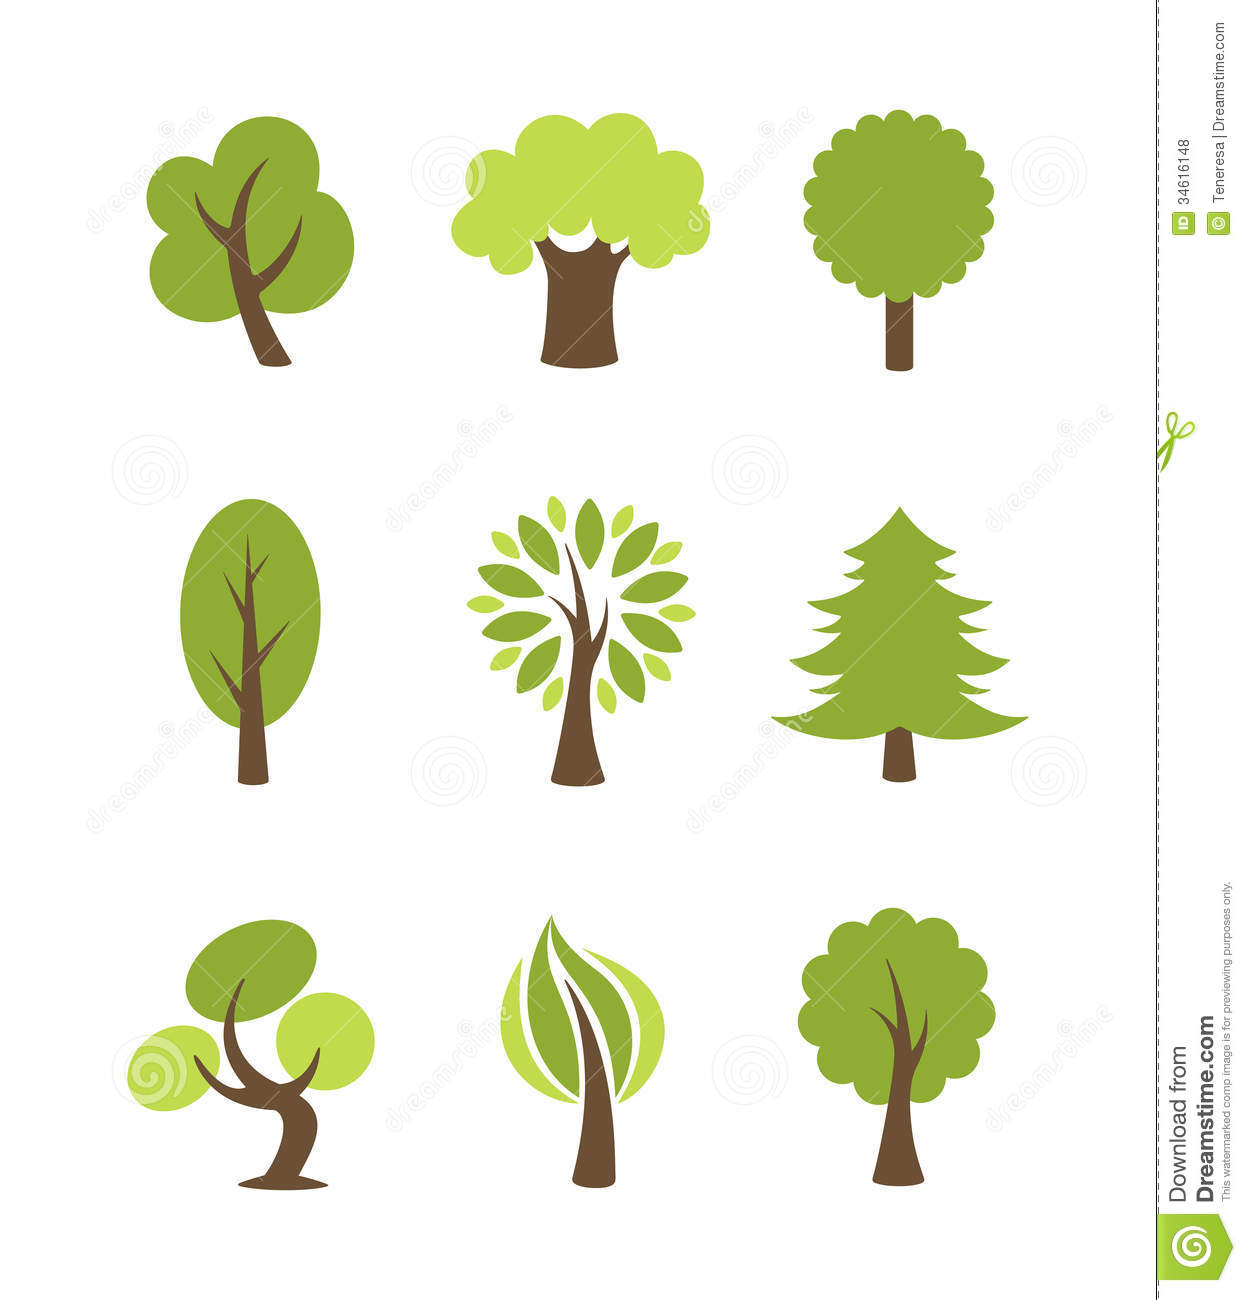 tree icon free icons and png backgrounds